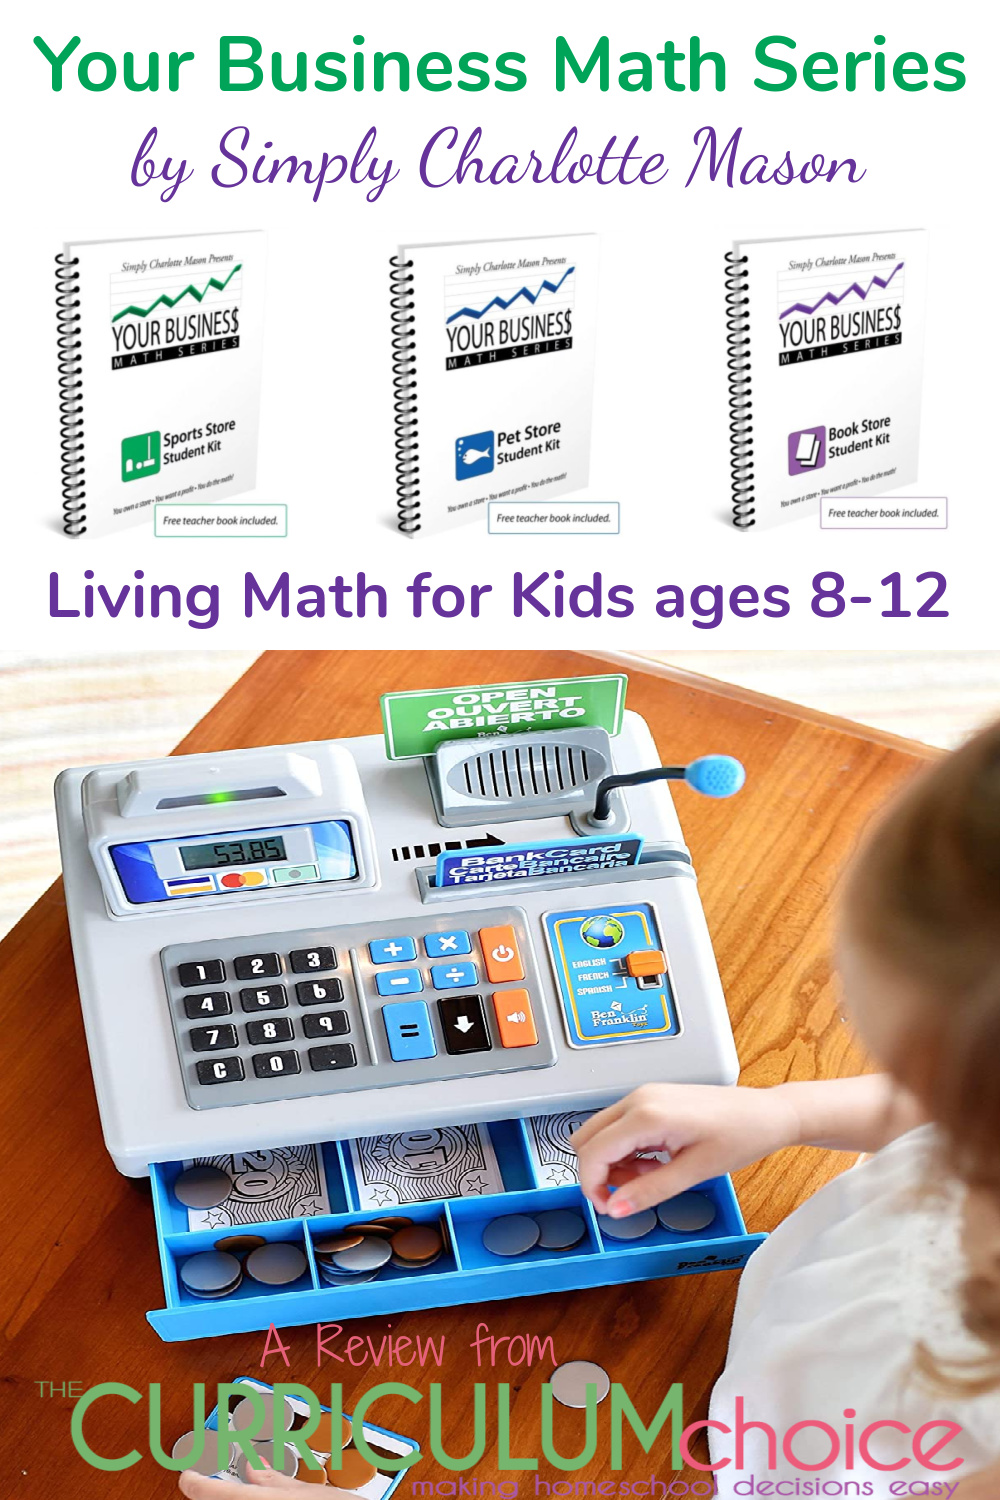 Your Business Math Series by Simply Charlotte Mason is a living math kit for ages 8–12! Students use their math knowledge to keep their store running and hopefully, profitable. A Review from The Curriculum Choice.